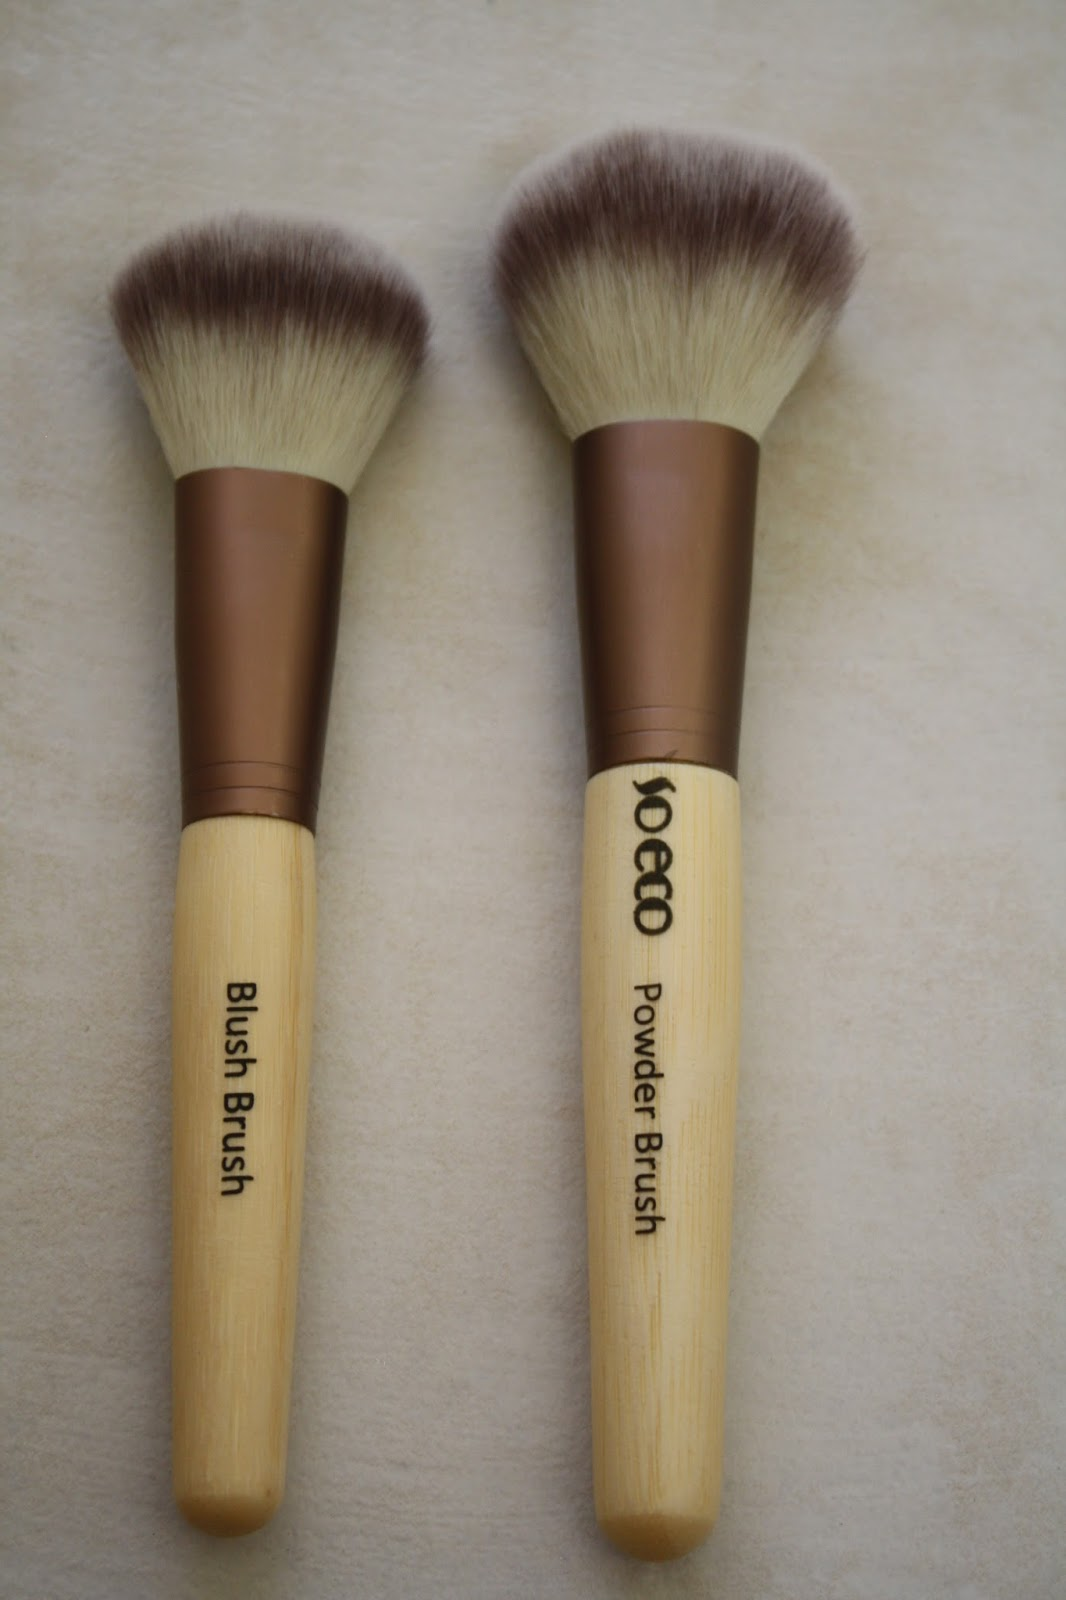 Makeup Brushes And What They Are Used For: Ladybirdandlola: So Eco Makeup Brushes